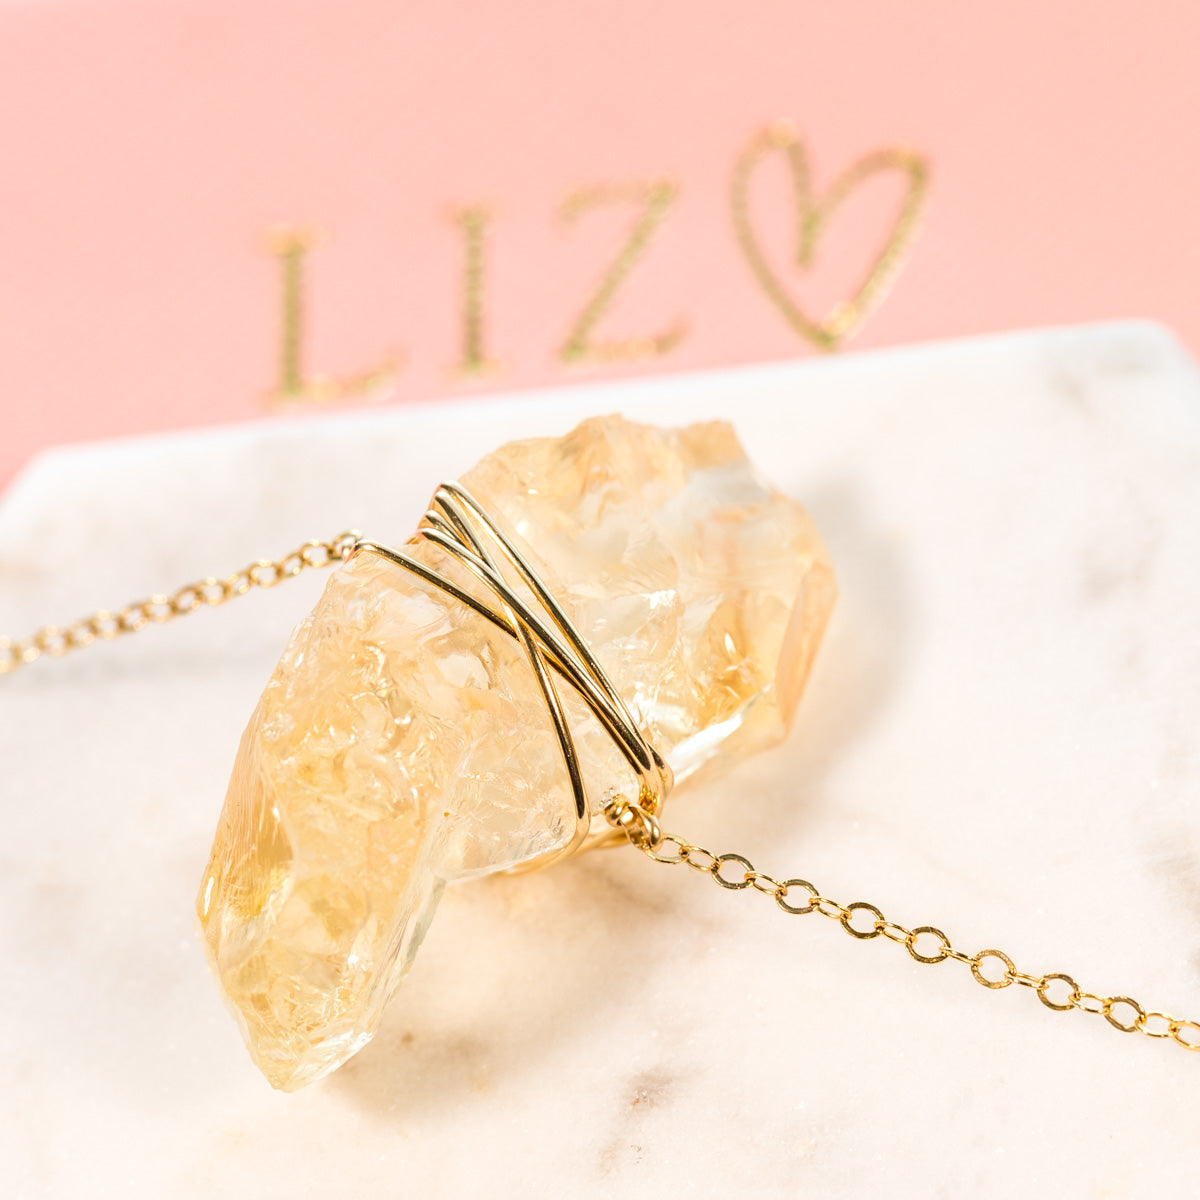 Citrine Necklace, The Queen Bee Necklace, Raw Citrine Crystal Necklace, Citrine Chunk Necklace, Wire-wrapped, Gemstone Necklace, Liz.Beth Jewelry Co.